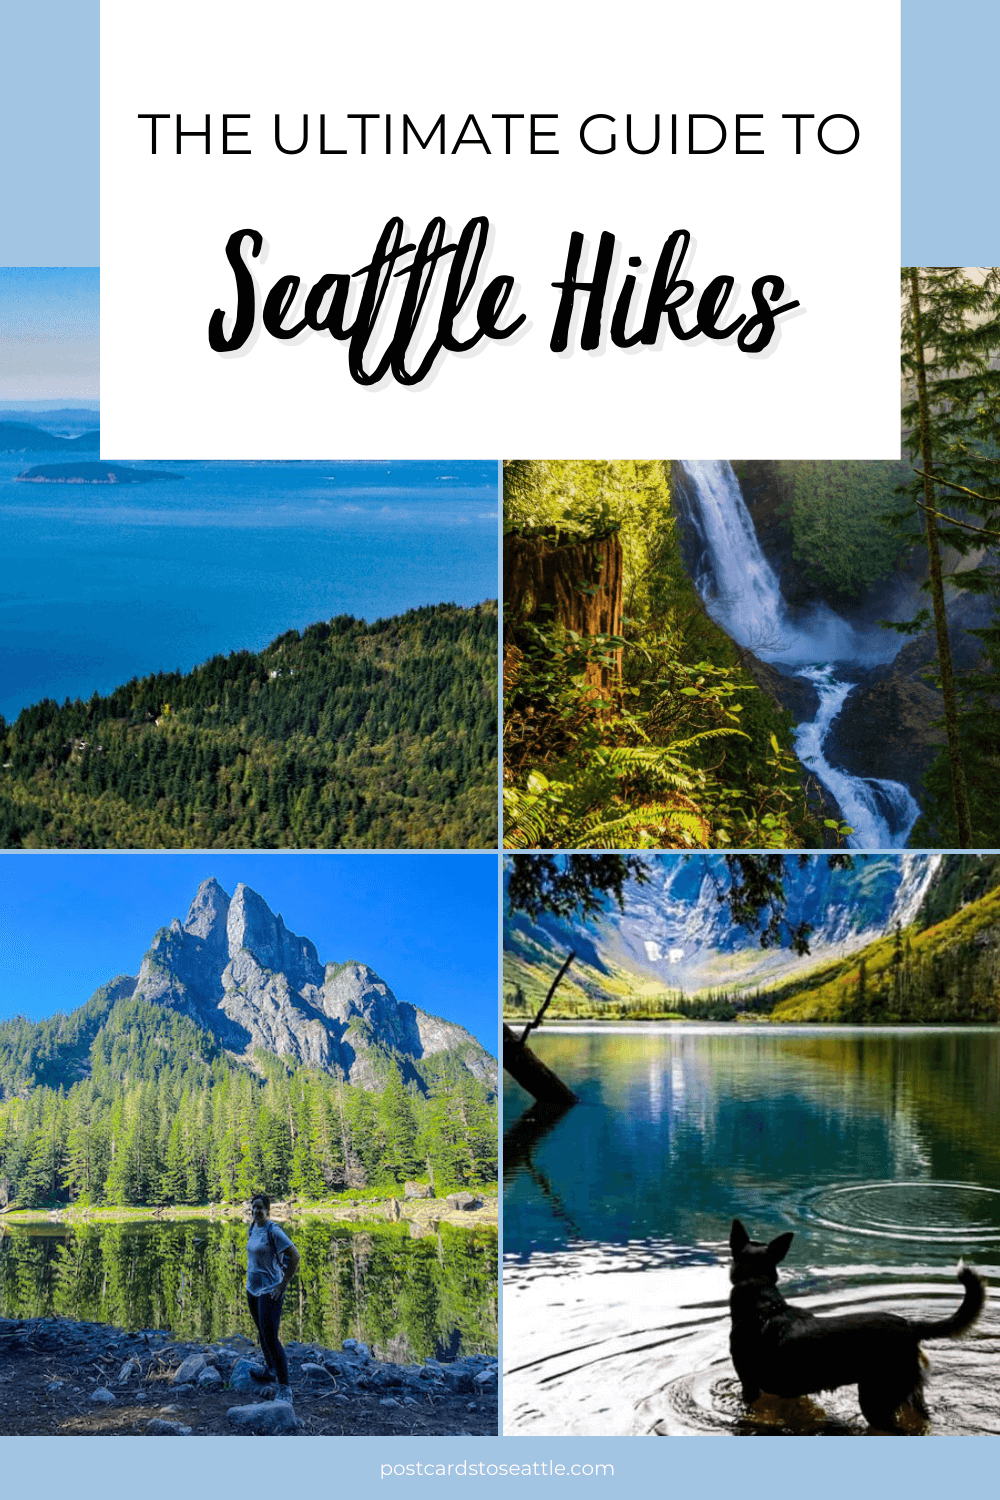 15 Hike and Brewery Combinations Around Seattle